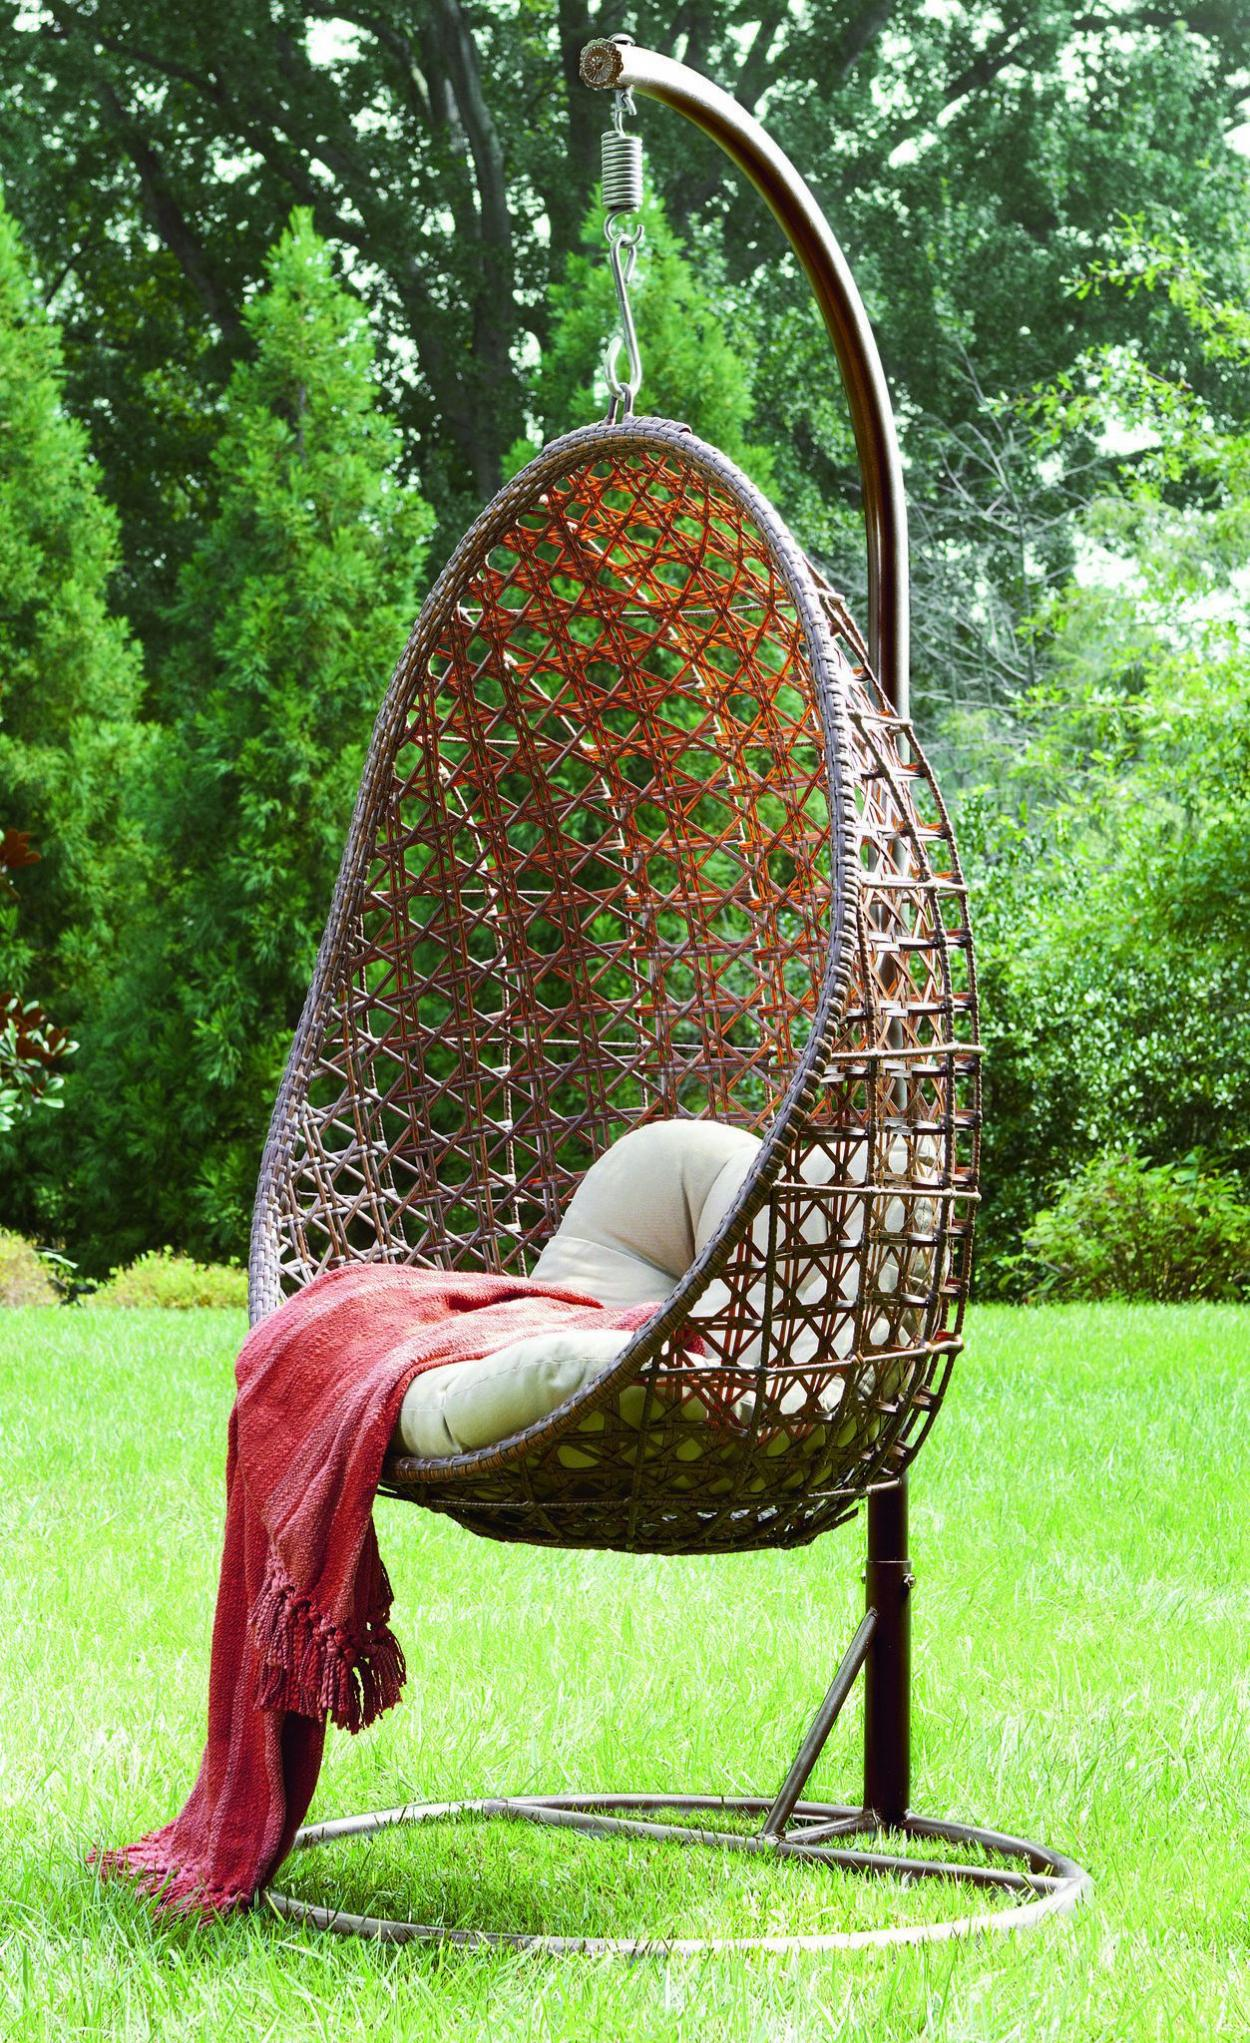 Outdoor Hanging Decor - Adorable rattan outdoor hanging ceiling chair for beauty backyard decor